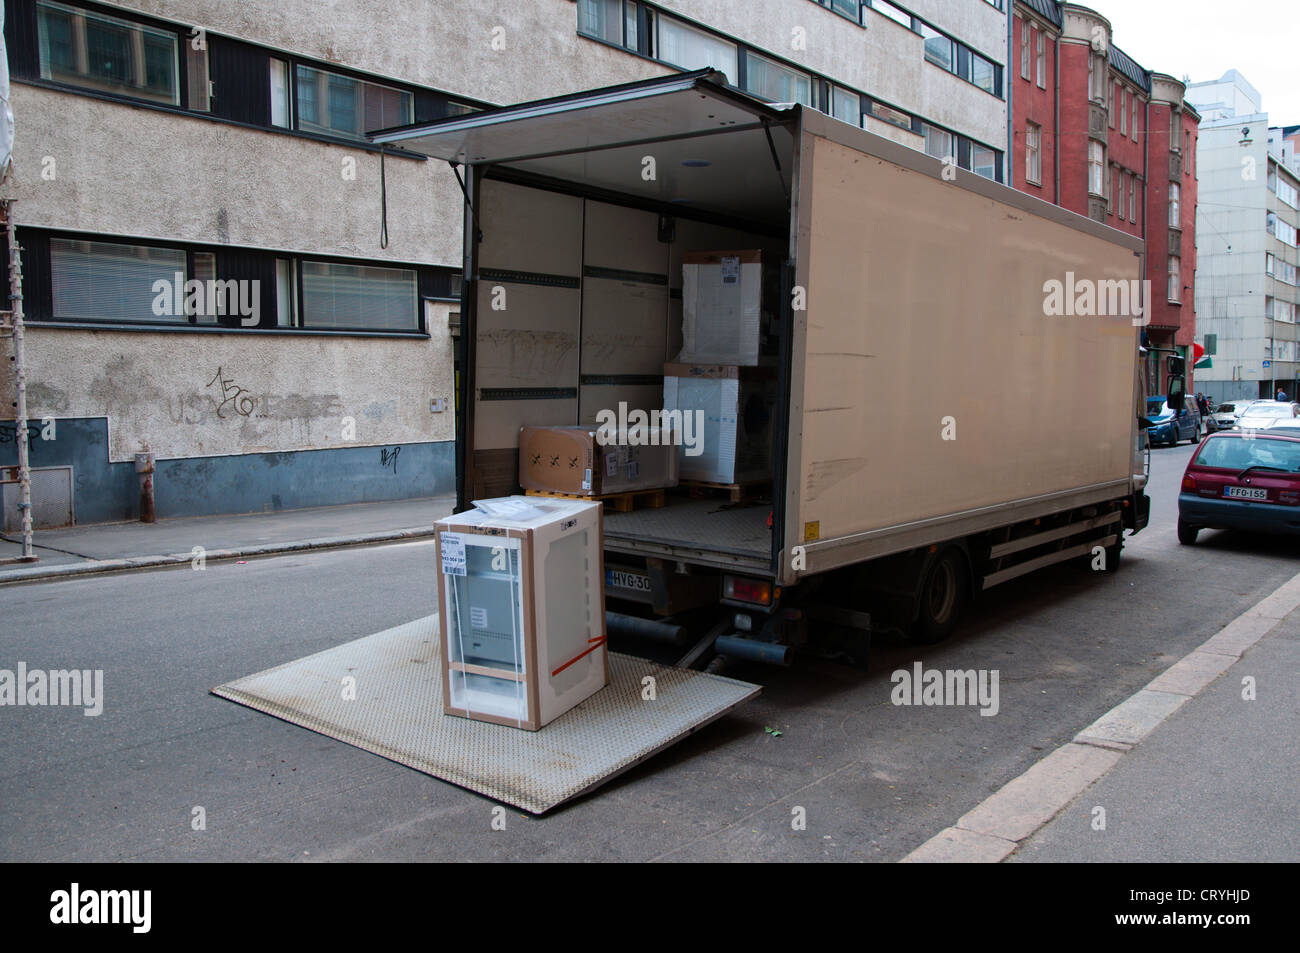 Van delivering household electrical appliances central Helsinki Finland Europe Stock Photo